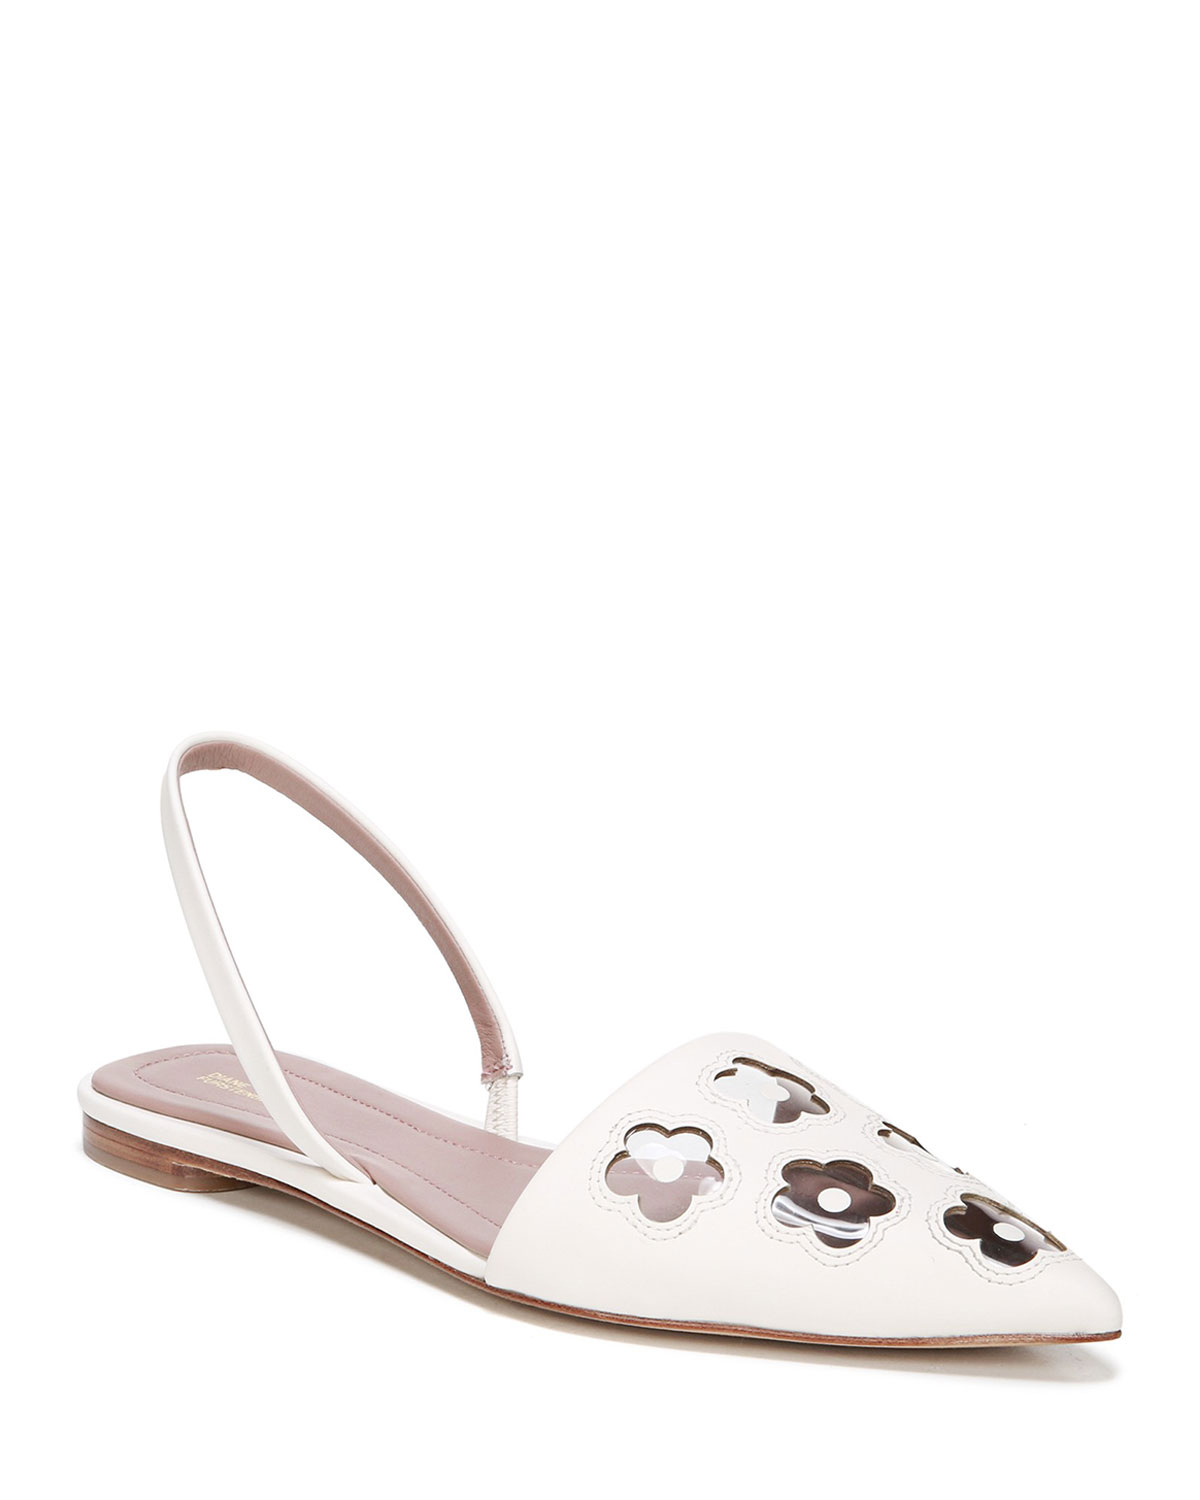 "Diane von Furstenberg ""Koko"" Point Toe Sling-Back Flat Sandals"